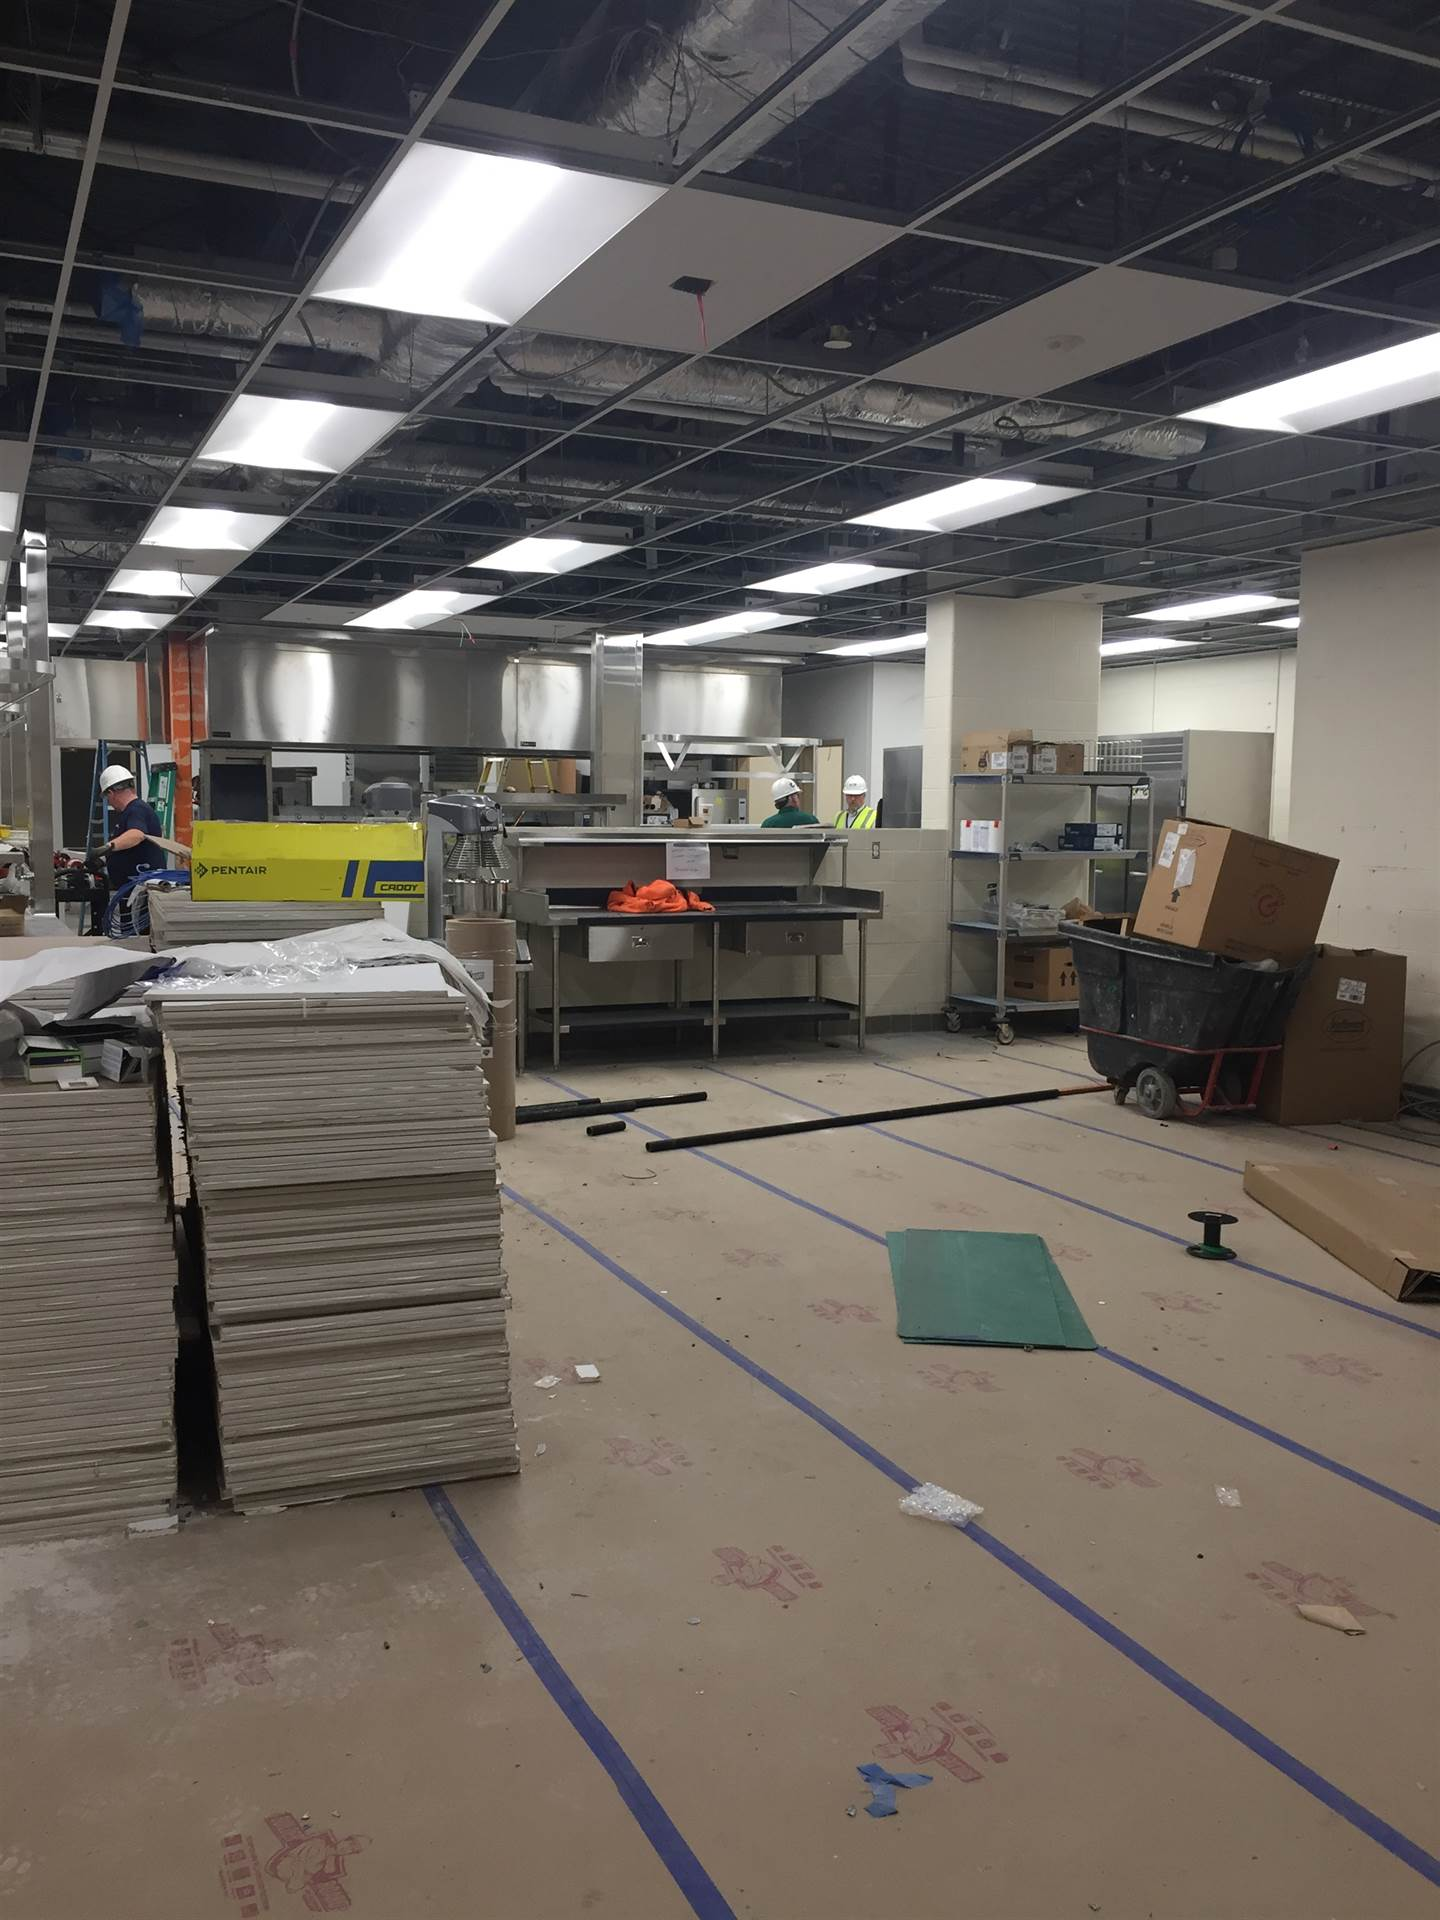 Construction in Culinary Lab